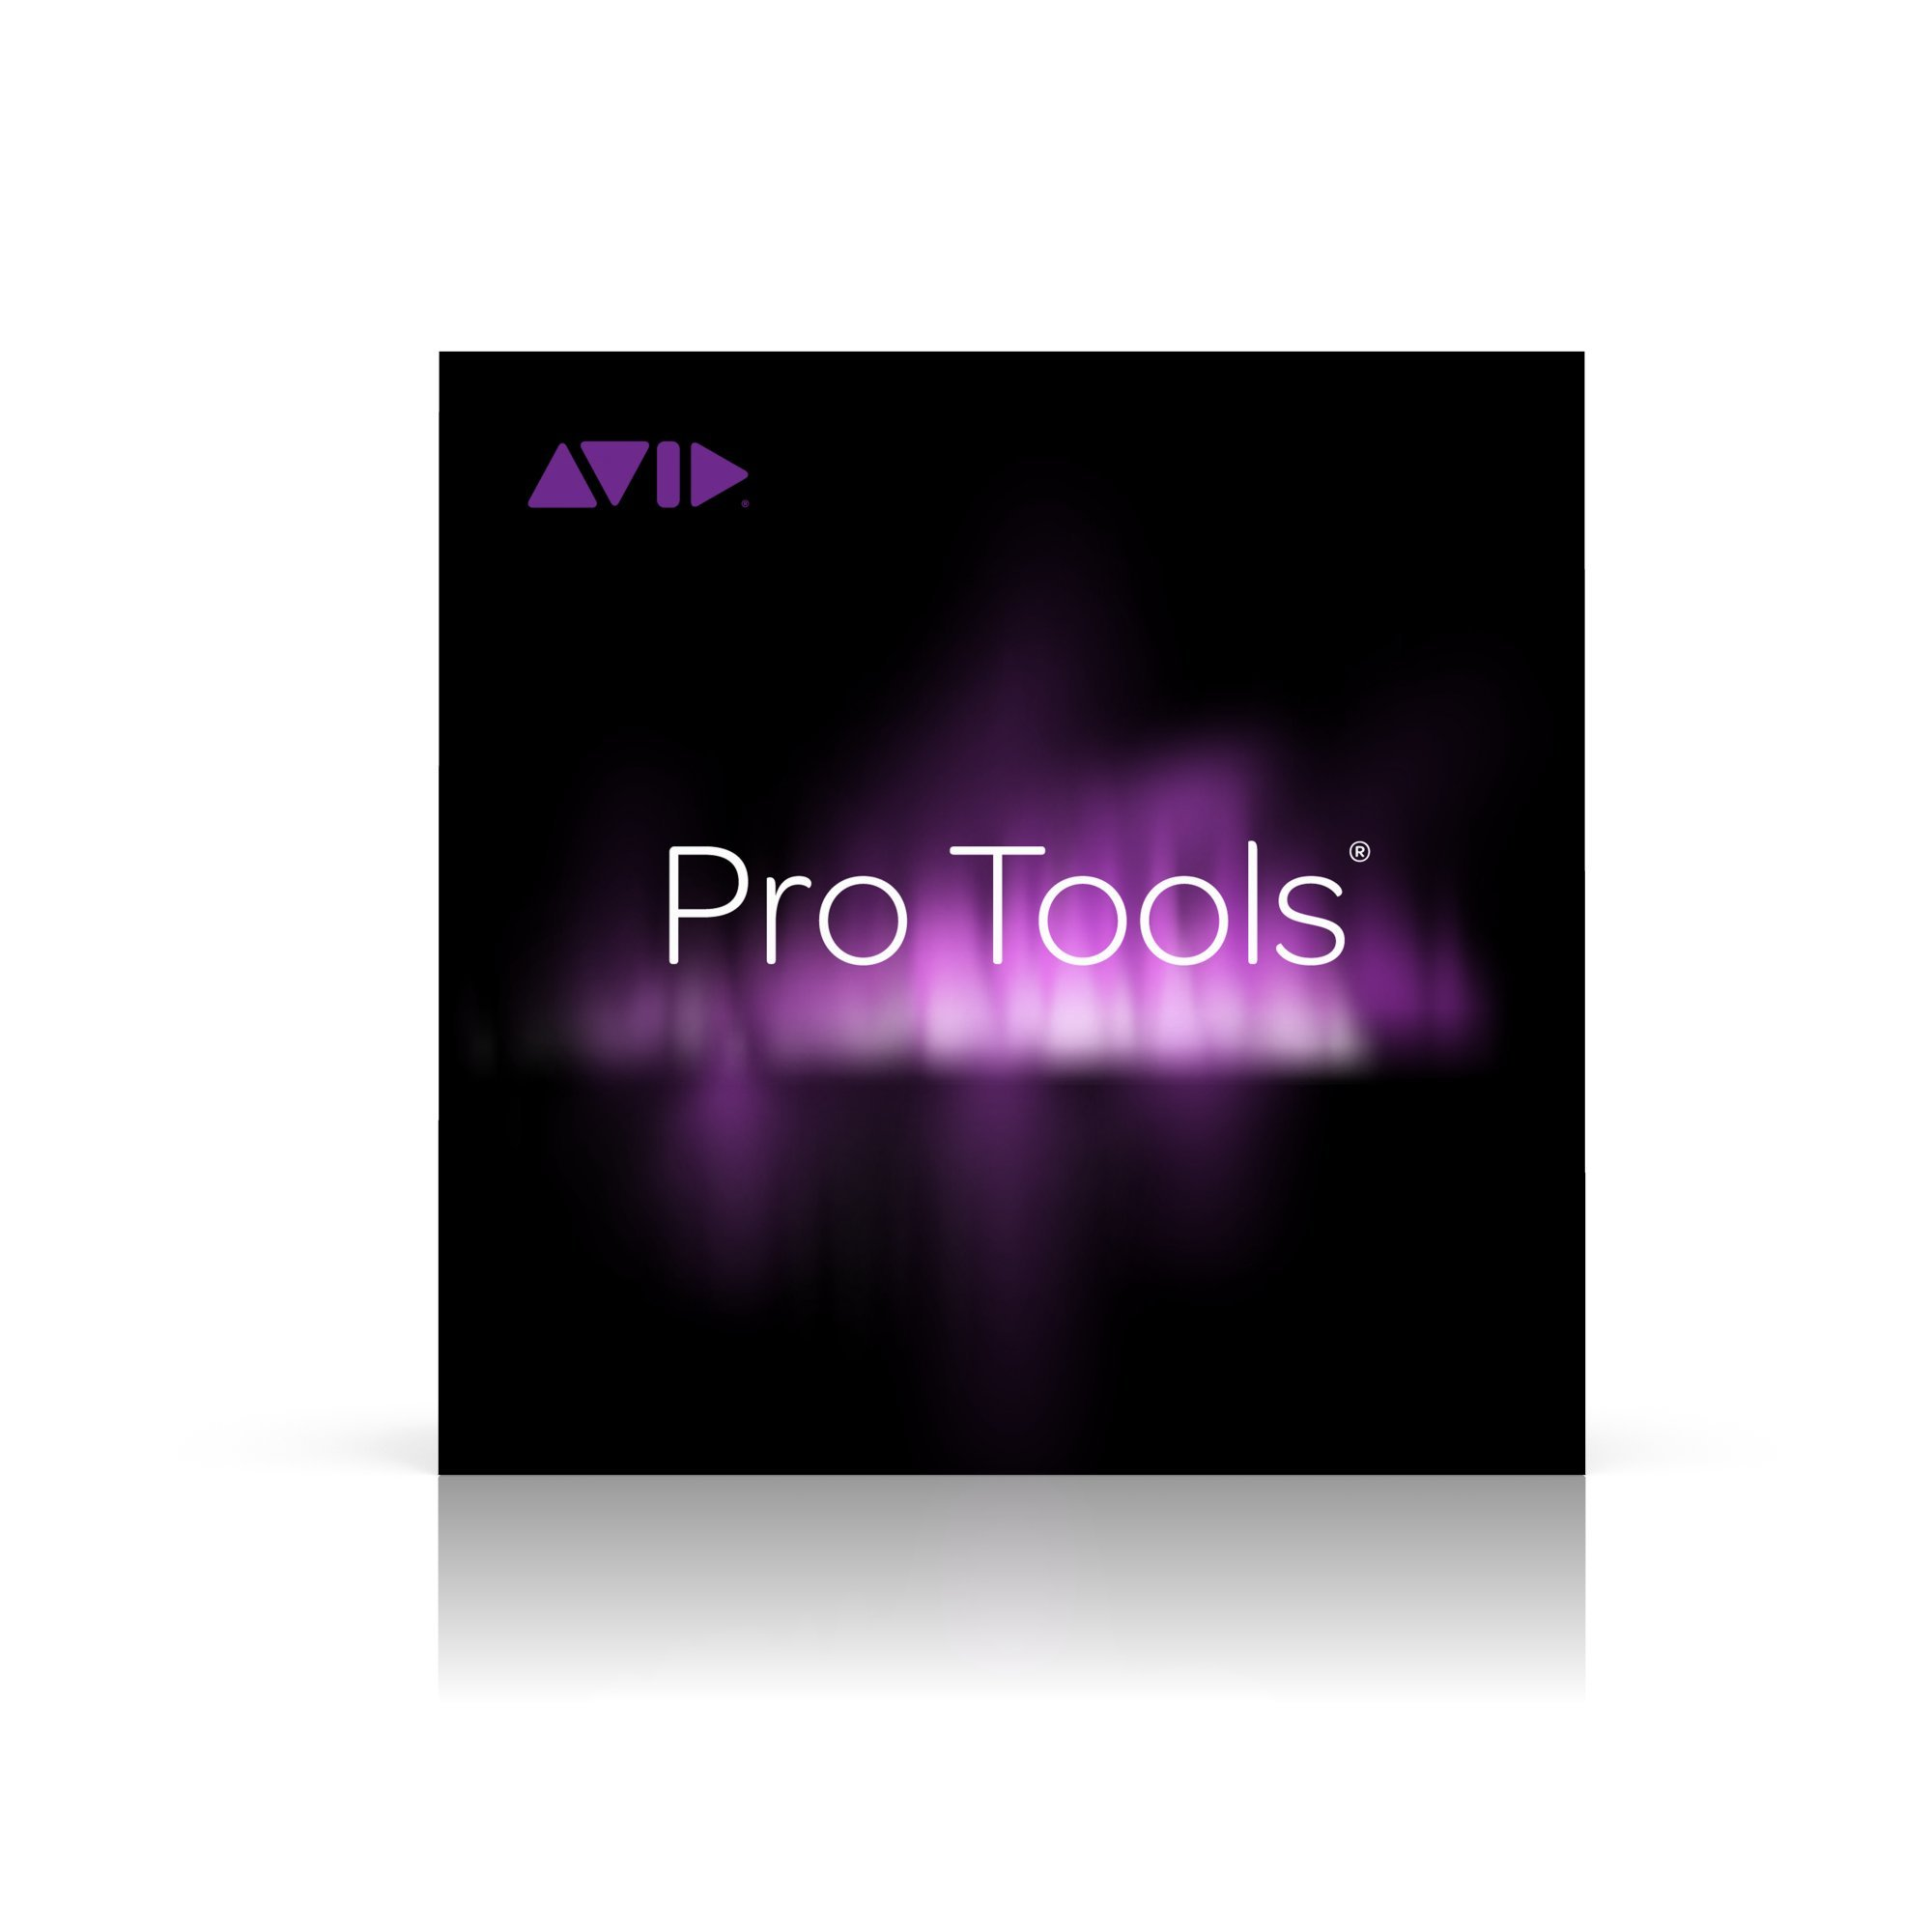 Avid Pro Tools Annual Subscription (1 Year) - Student/Teacher by Avid